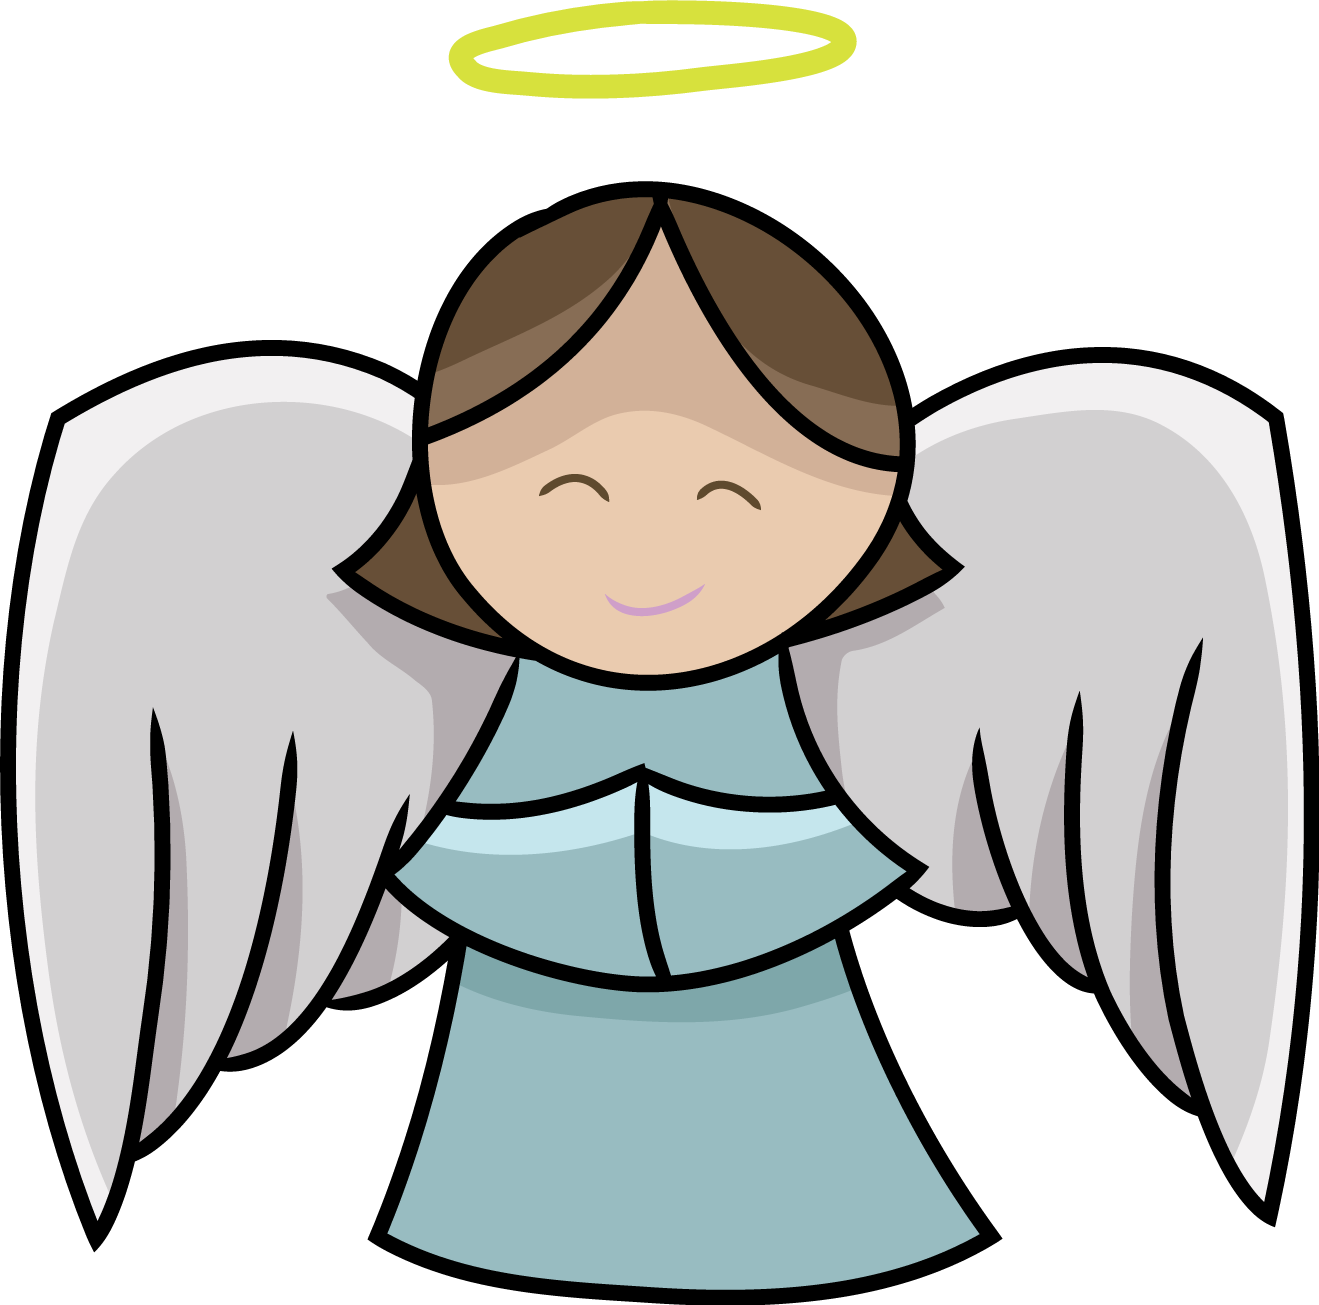 Shepherds and at getdrawings. Angels clipart head clip art royalty free